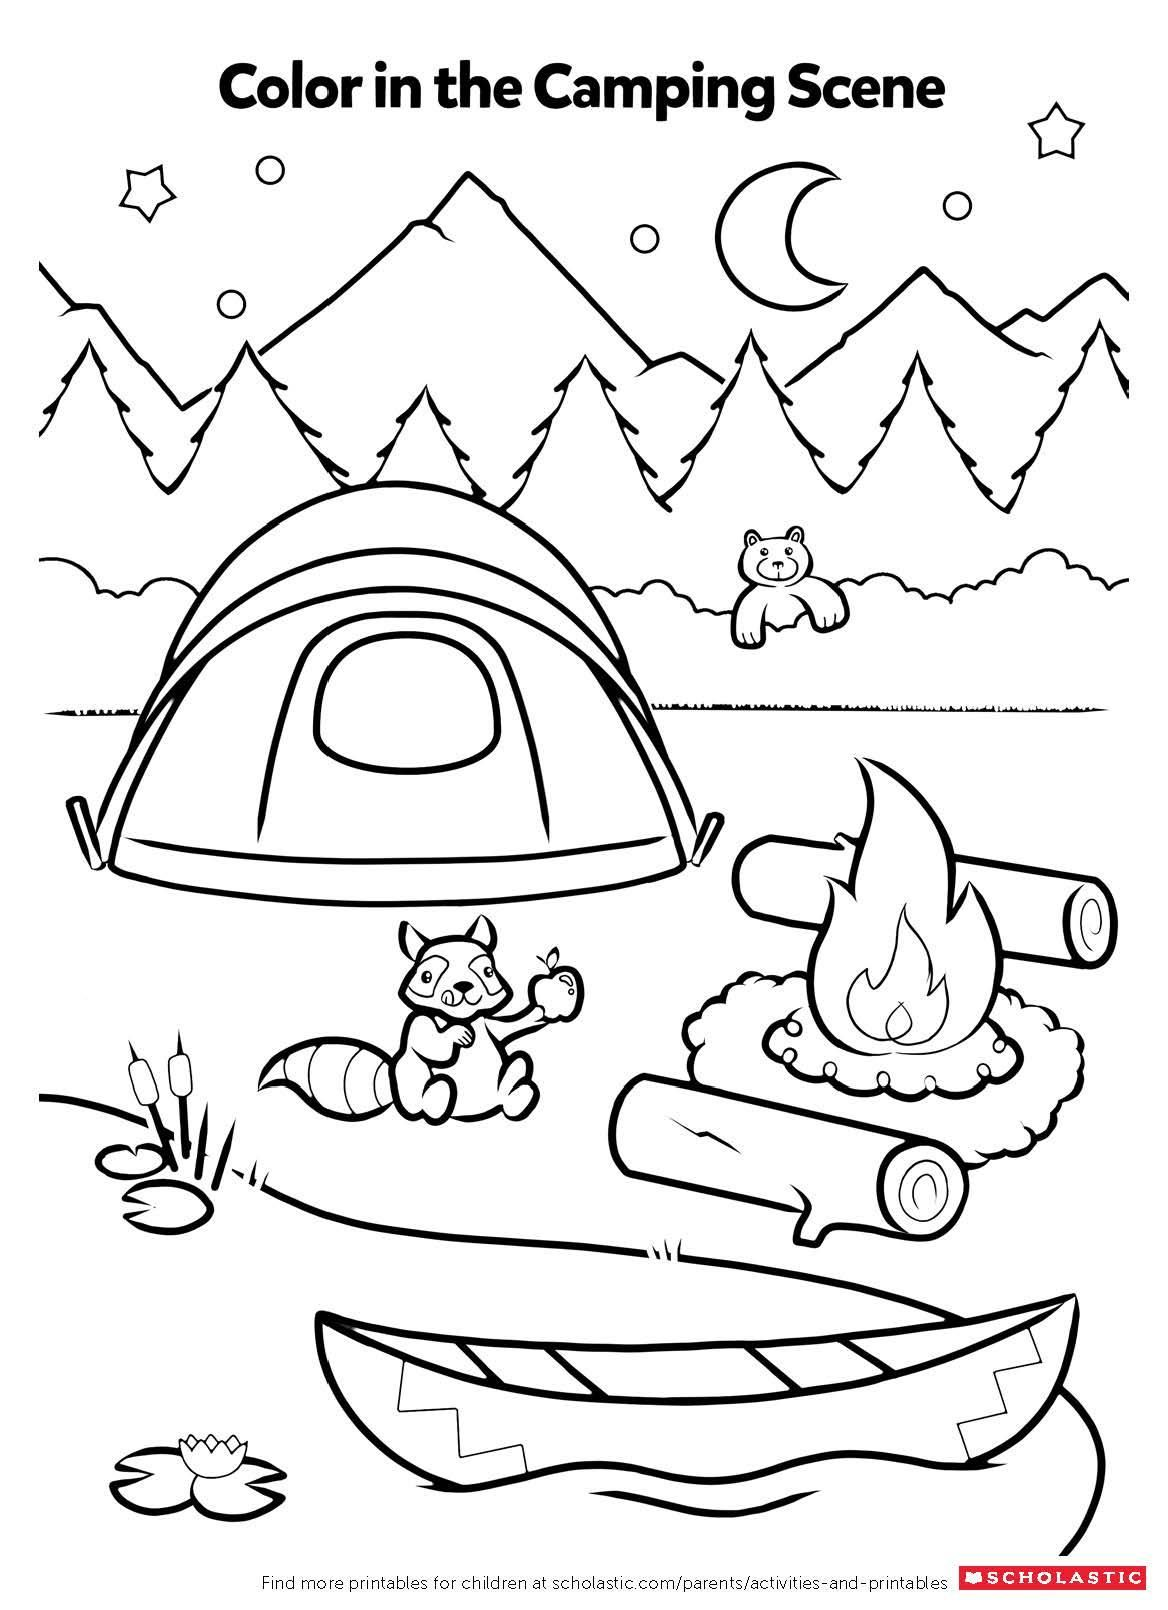 Summer Camp Coloring Pages Books Thanksgiving Color By Number Printables Unicorn Realistic Cute Spider Dancing Basketball Logo F Thema Kleurplaten Activiteiten